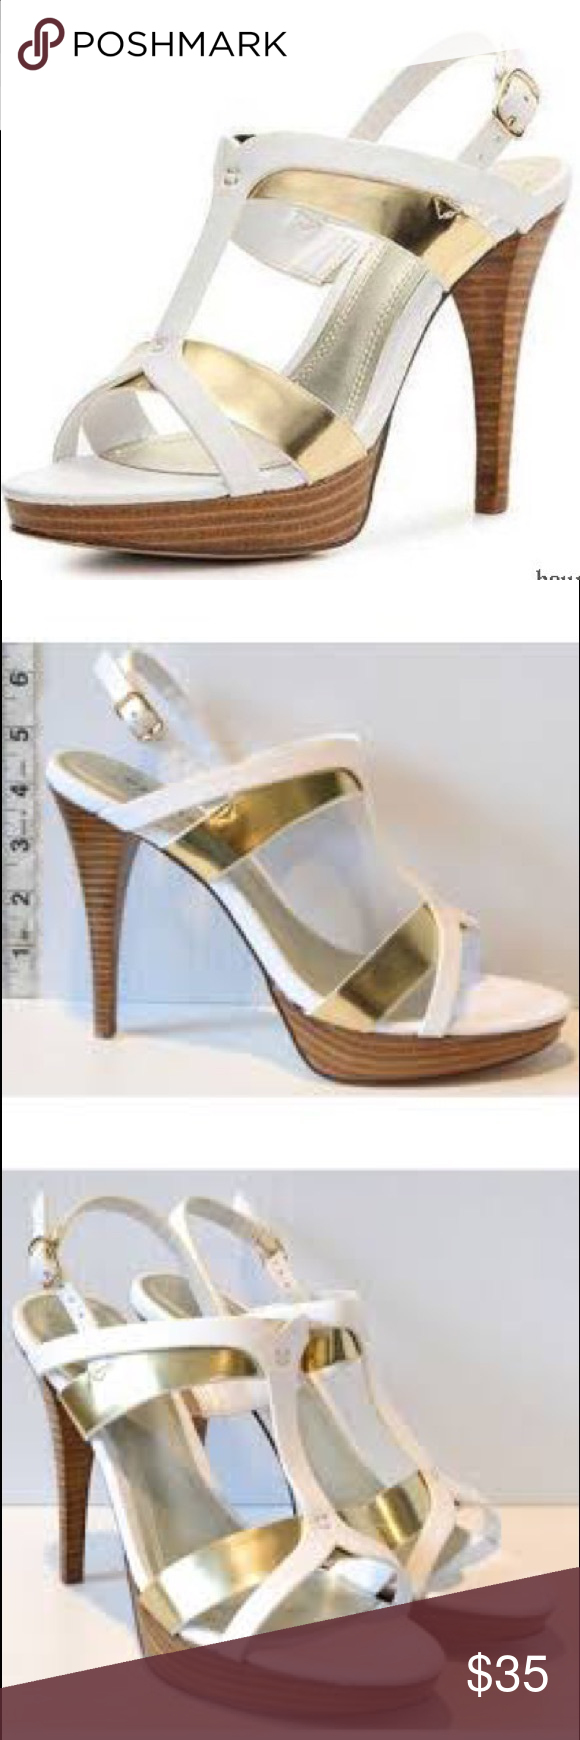 3dbfee792342 Chilis Ohanna Platform Sandal In White Gold Brand New. Great Holiday Shoe!